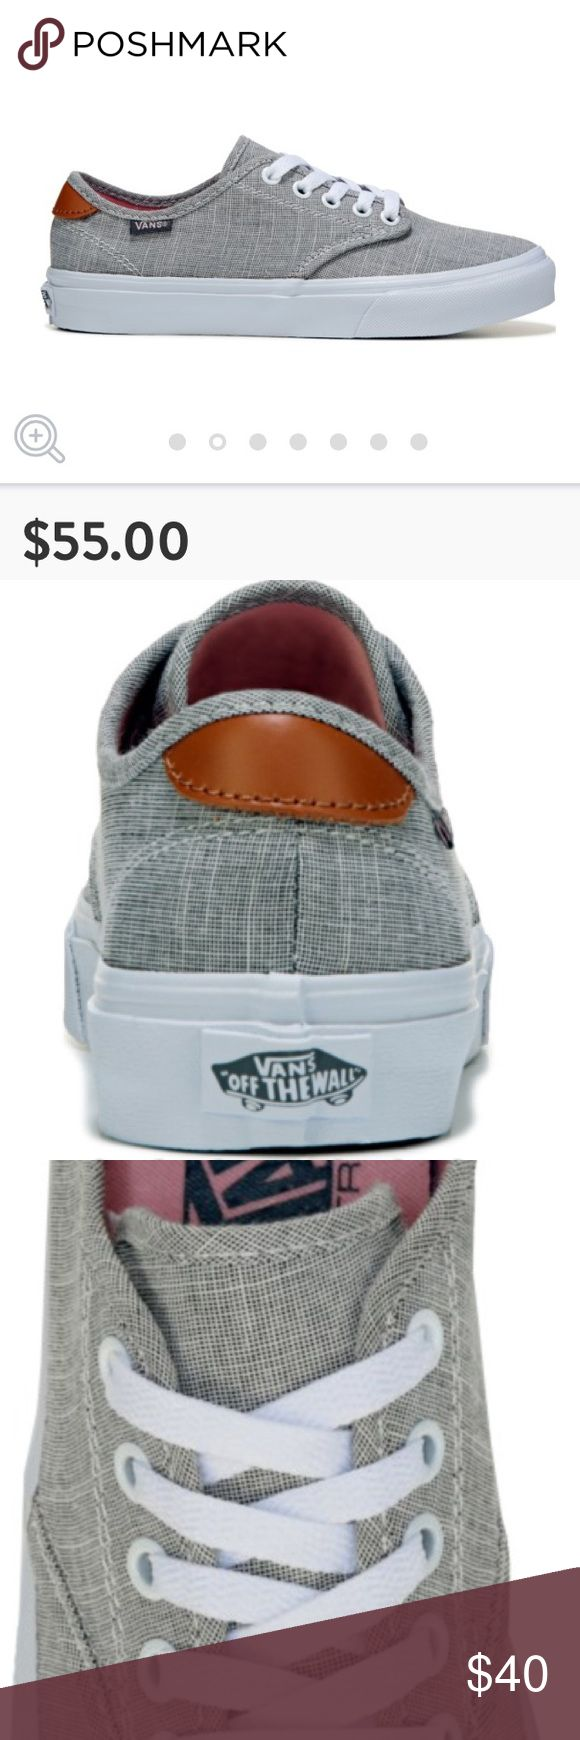 VANS Ultra Cush Skate Shoe Like new! I don't think these were ever worn! Price Firm. Will keep if they don't sell at this price. Vans Shoes Sneakers